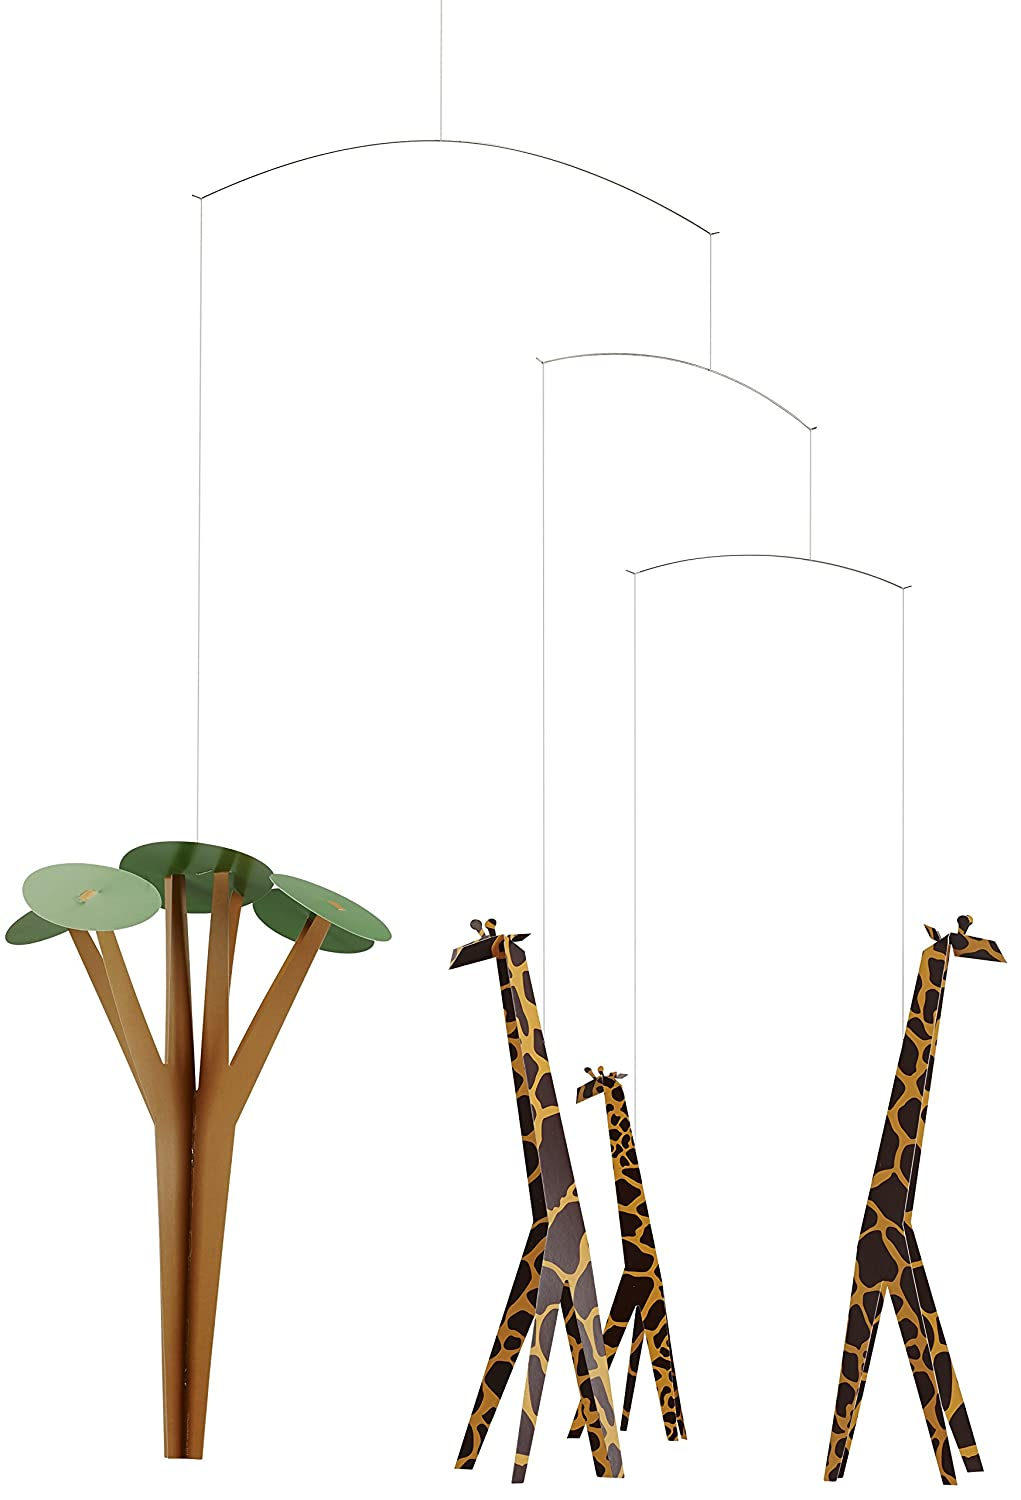 Giraffes On The Savannah Hanging Nursery Mobile - 24 Inches - Handmade in Denmark by Flensted